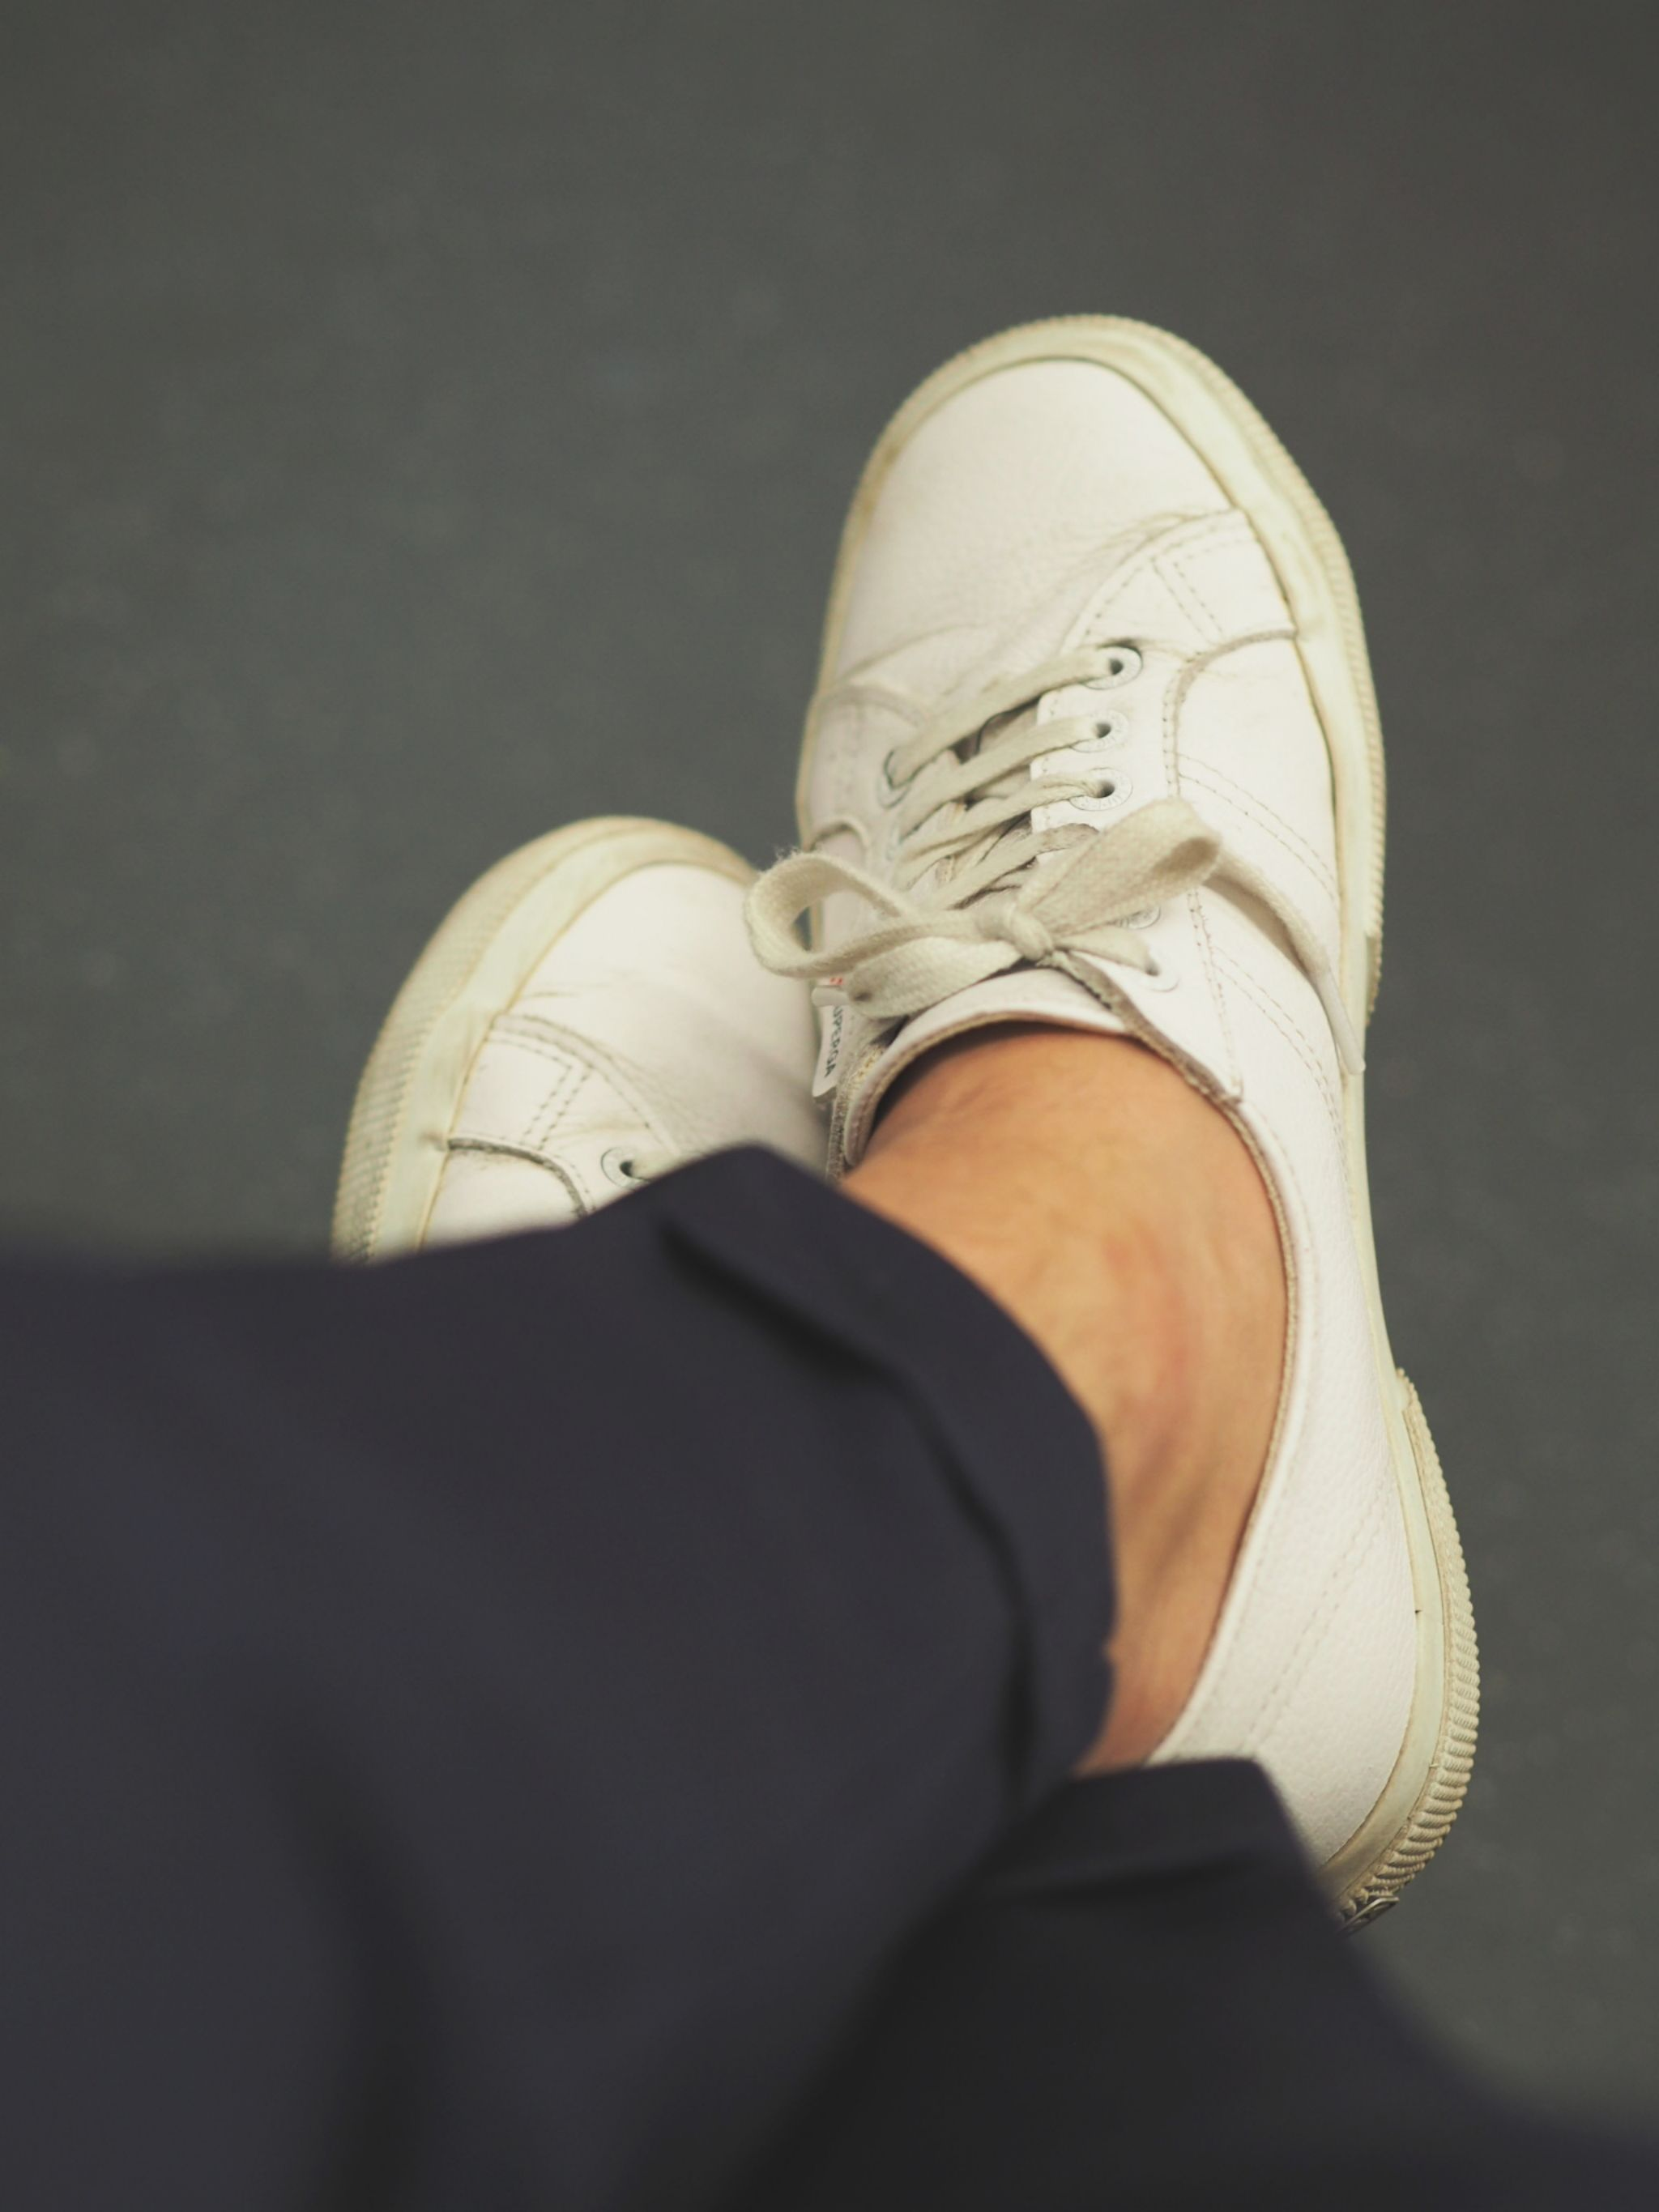 How to wear the same suit in different ways - classic Superga sneakers with the suit